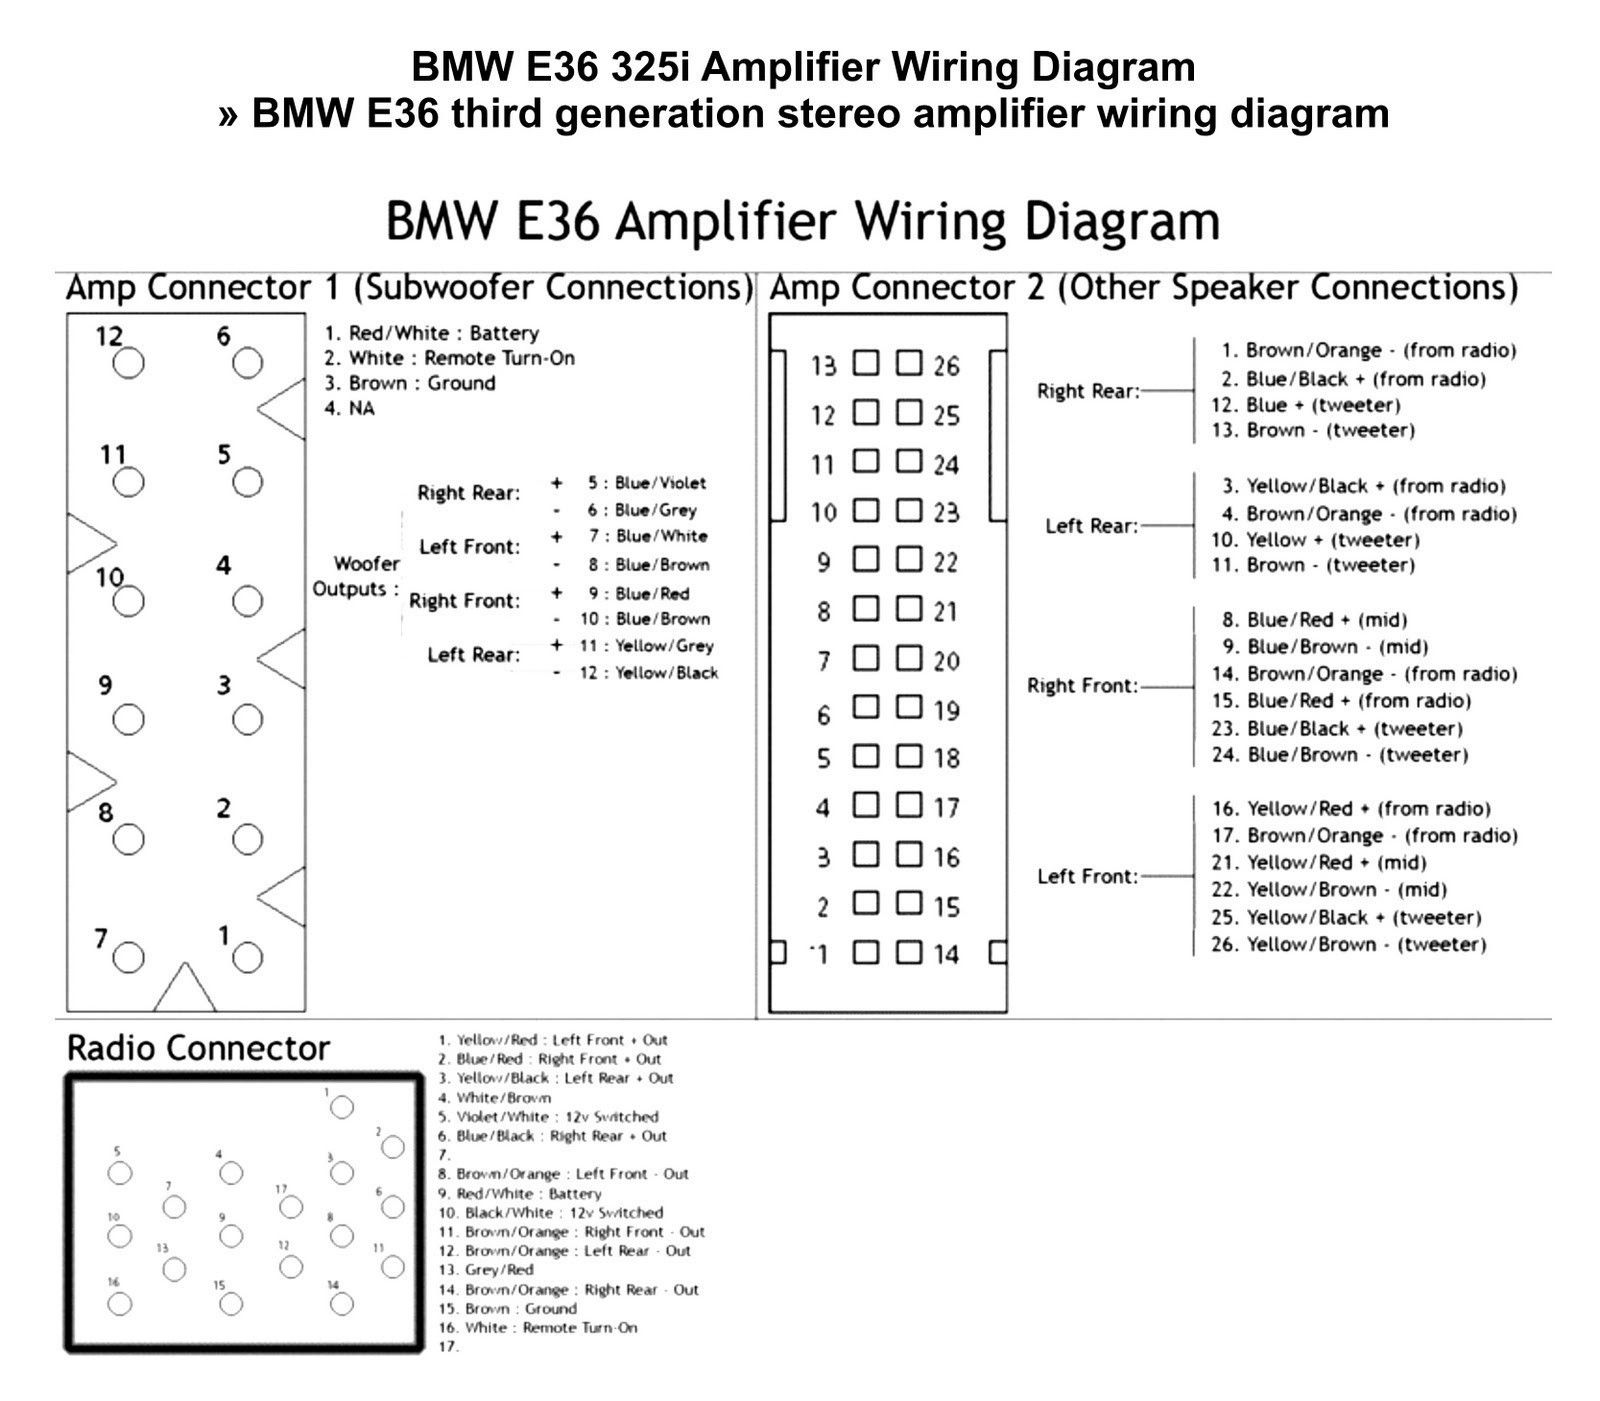 E36 Amplifier Wiring Diagram #diagram #diagramtemplate #diagramsamplePinterest